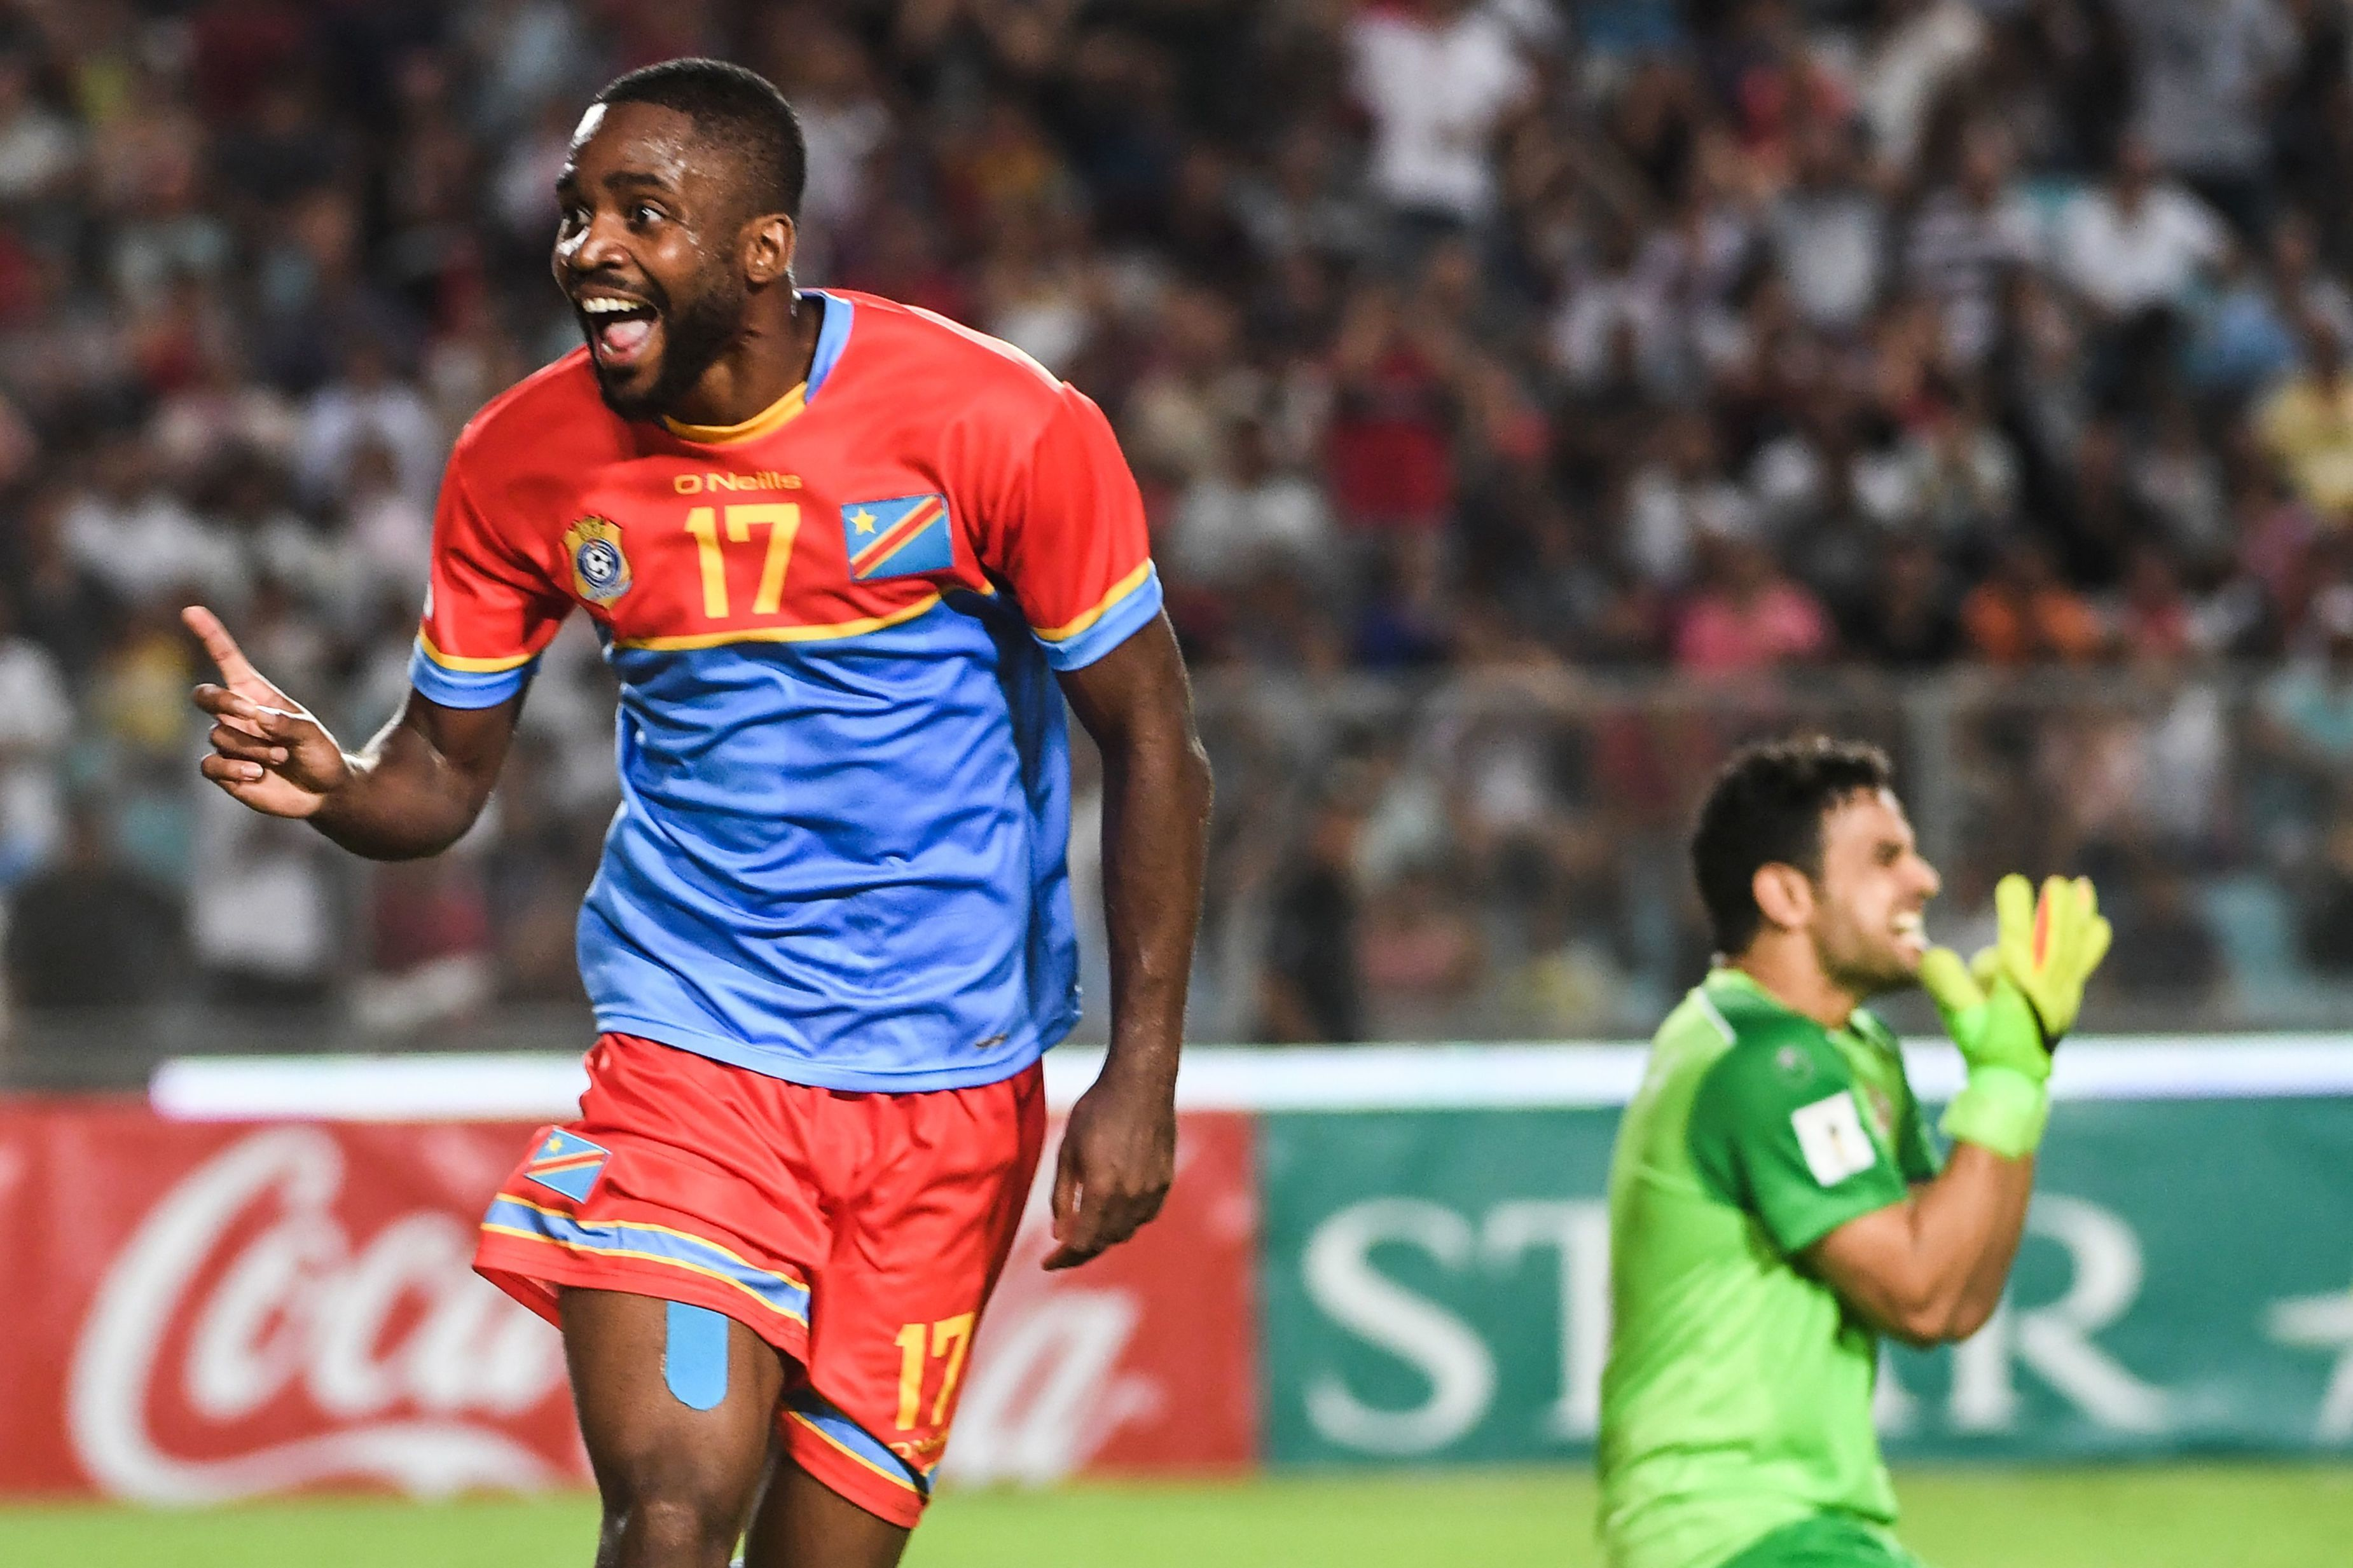 Africa's most Expensive player Bakambu leads DR Congo squad for Super Eagles Friendly